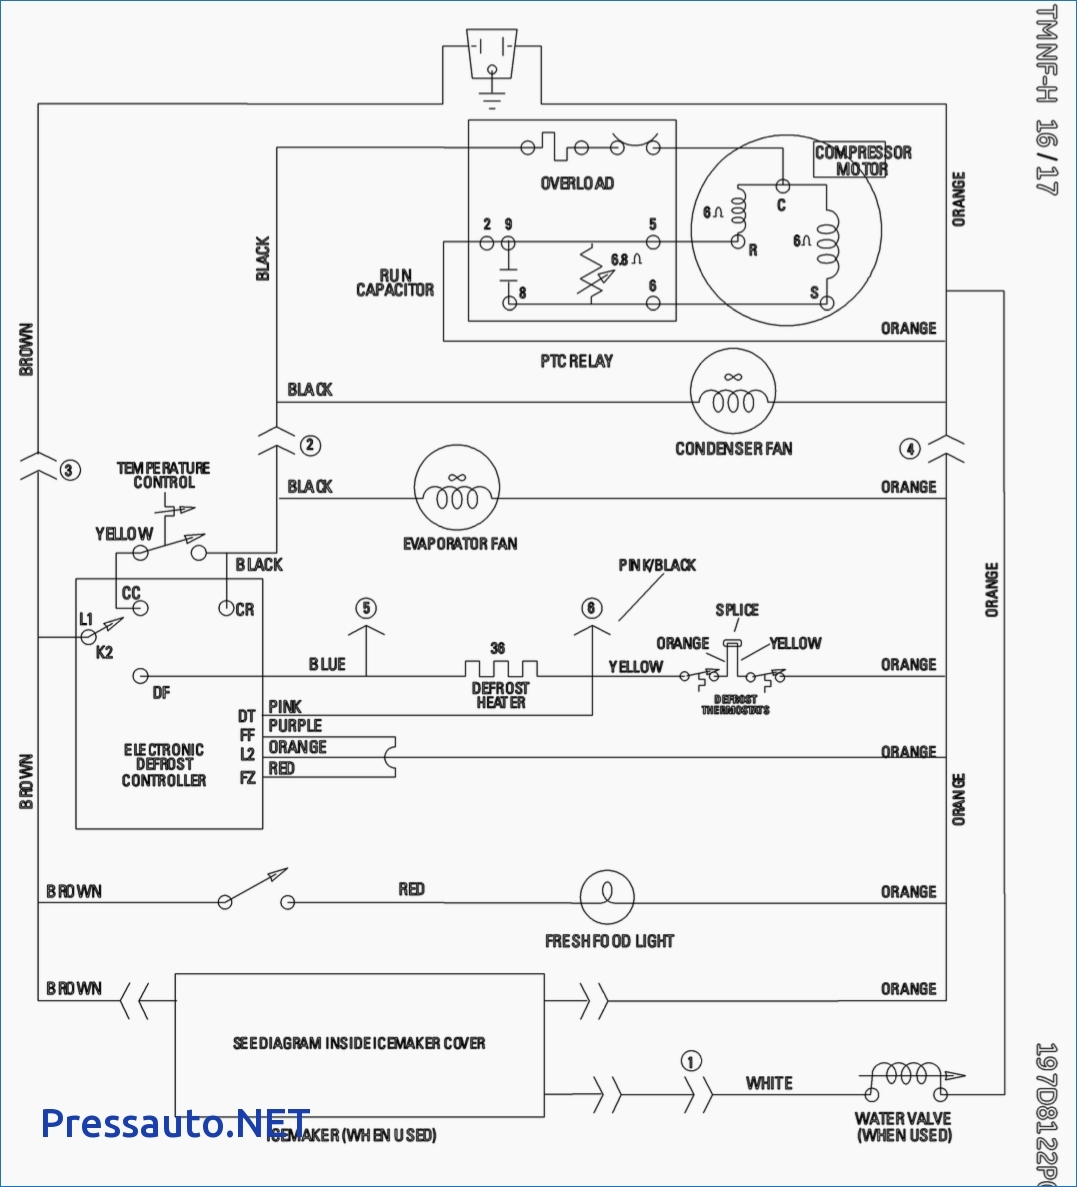 hight resolution of refrigerator wiring diagram pdf diagrams whirlpool refrigerator wiring diagram thoughtexpansion new 3g